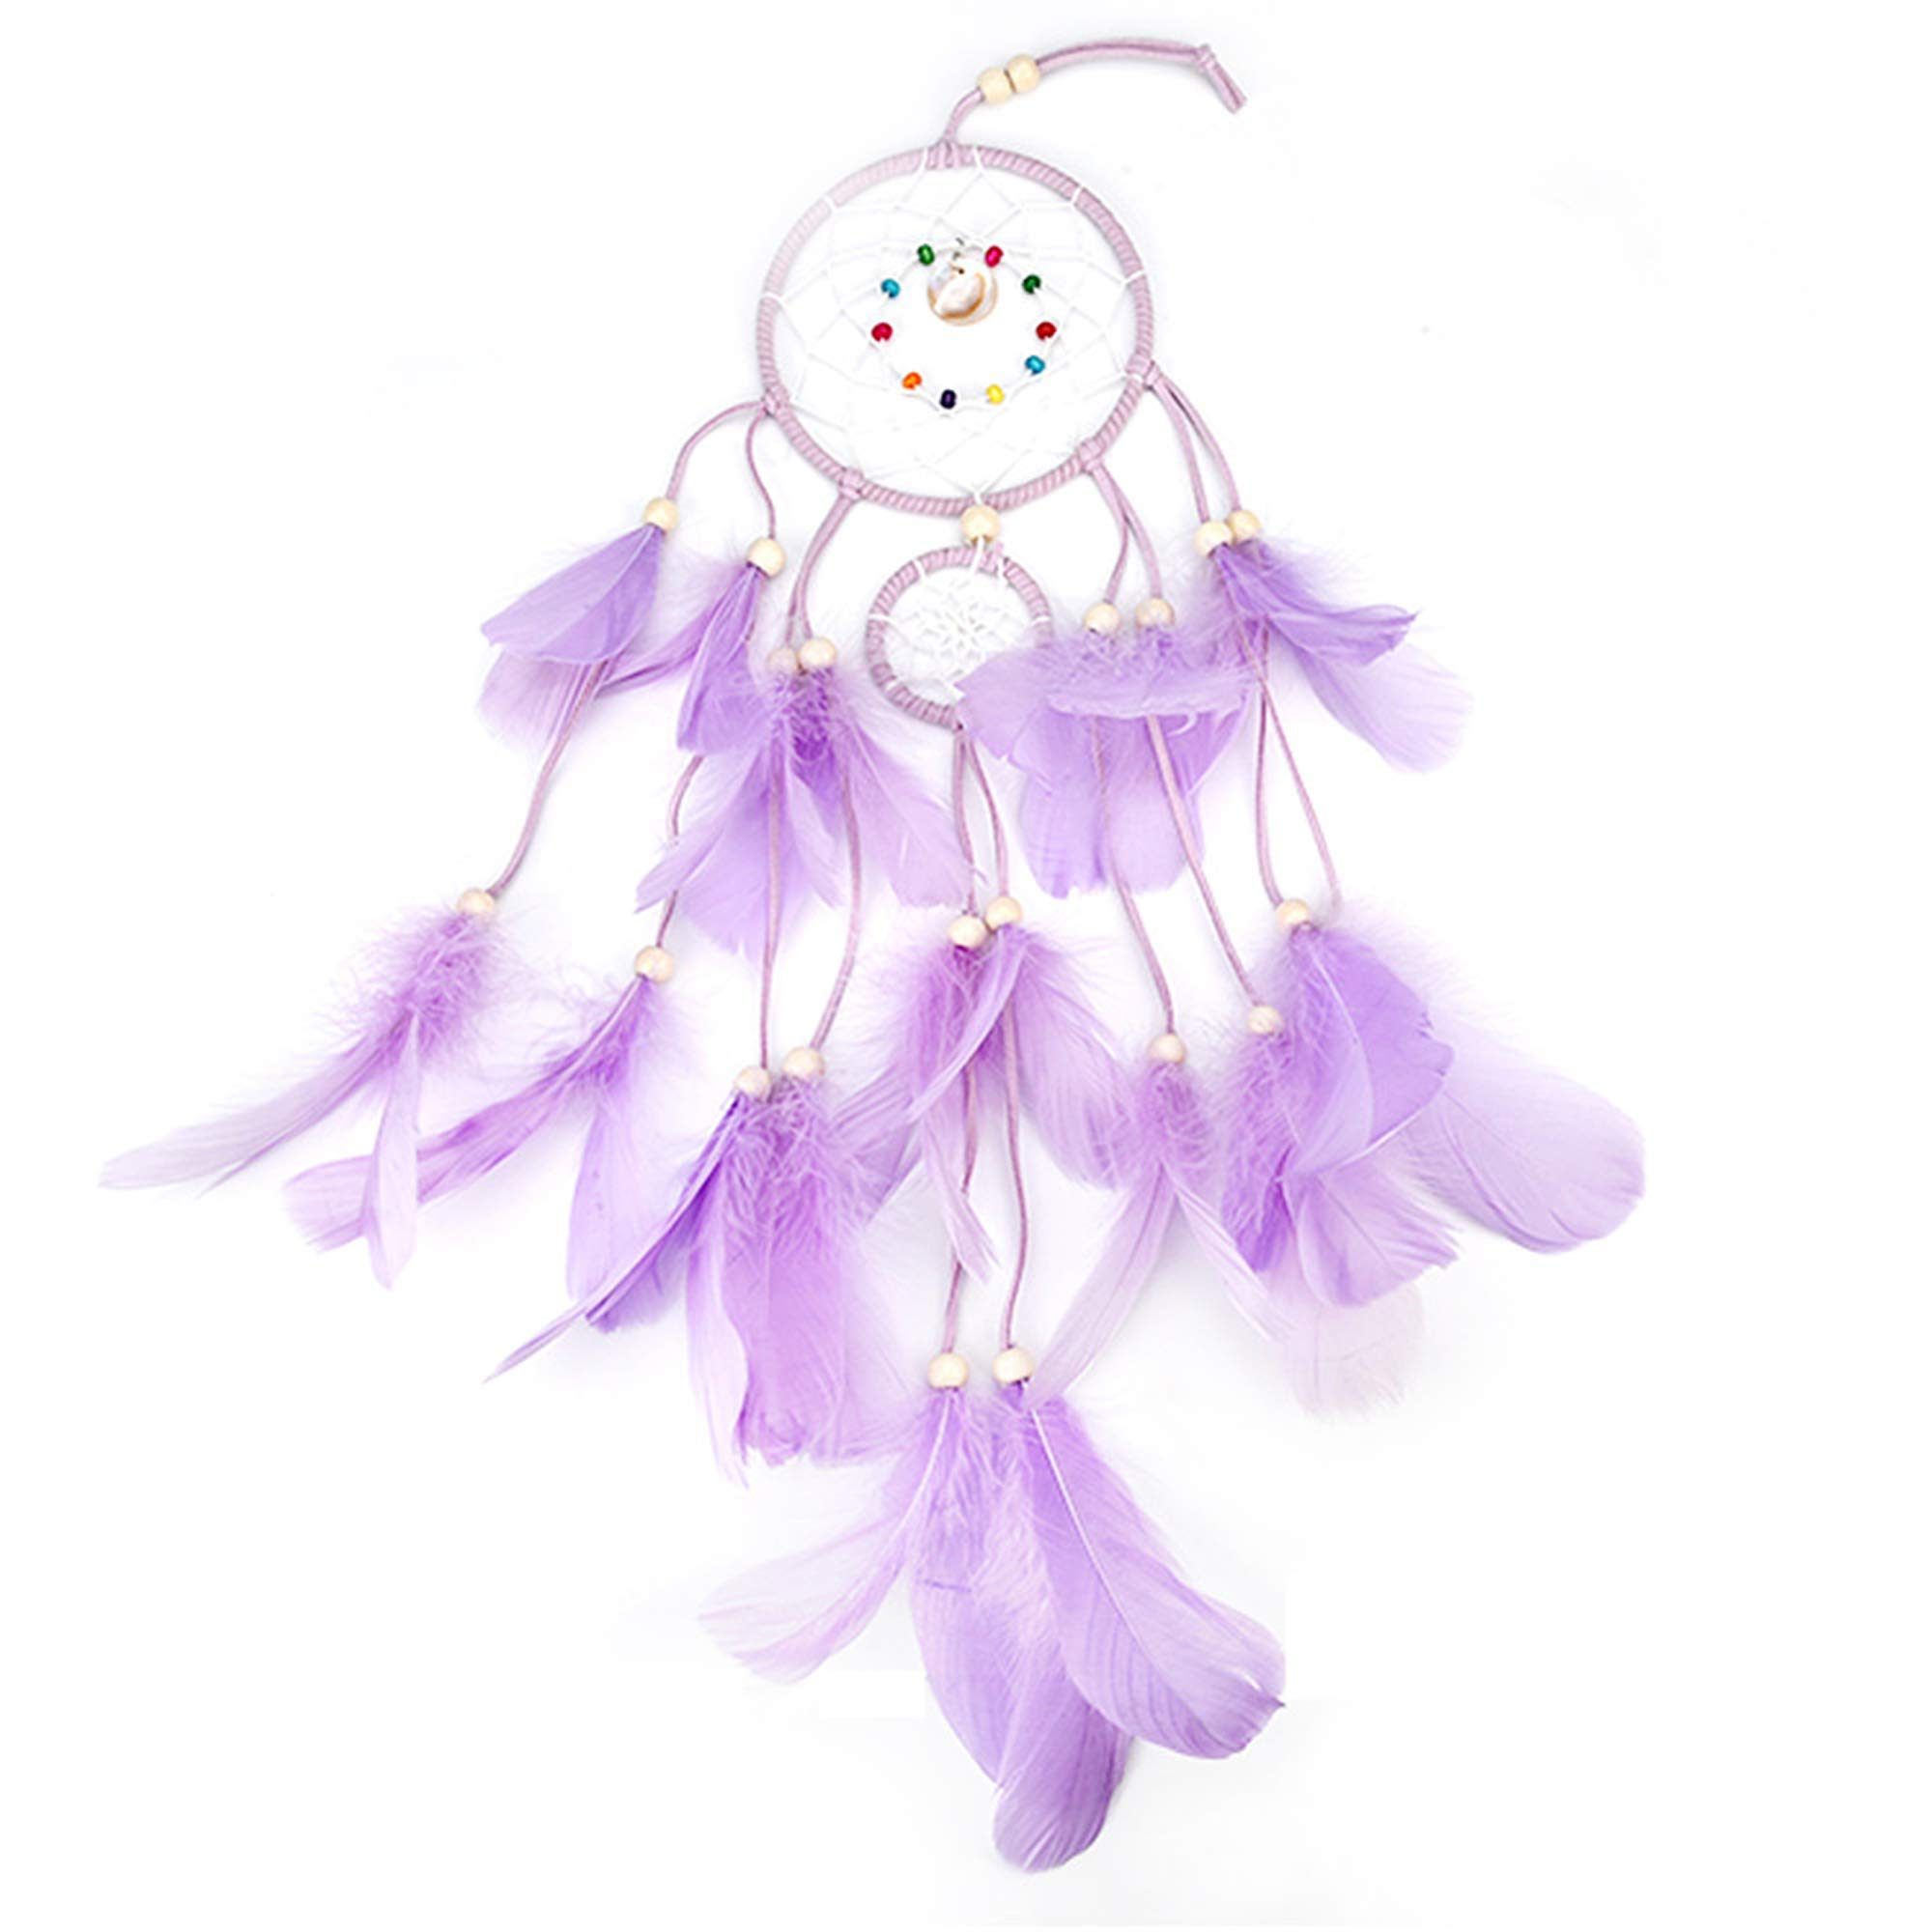 GELIS Led Dream Catcher Lights up,Native Lndian Dreamcatchers Wall Hanging Ornaments for Bedroom,with Feathers and 20Led Lighting,Caught Your Dream  (Purple)